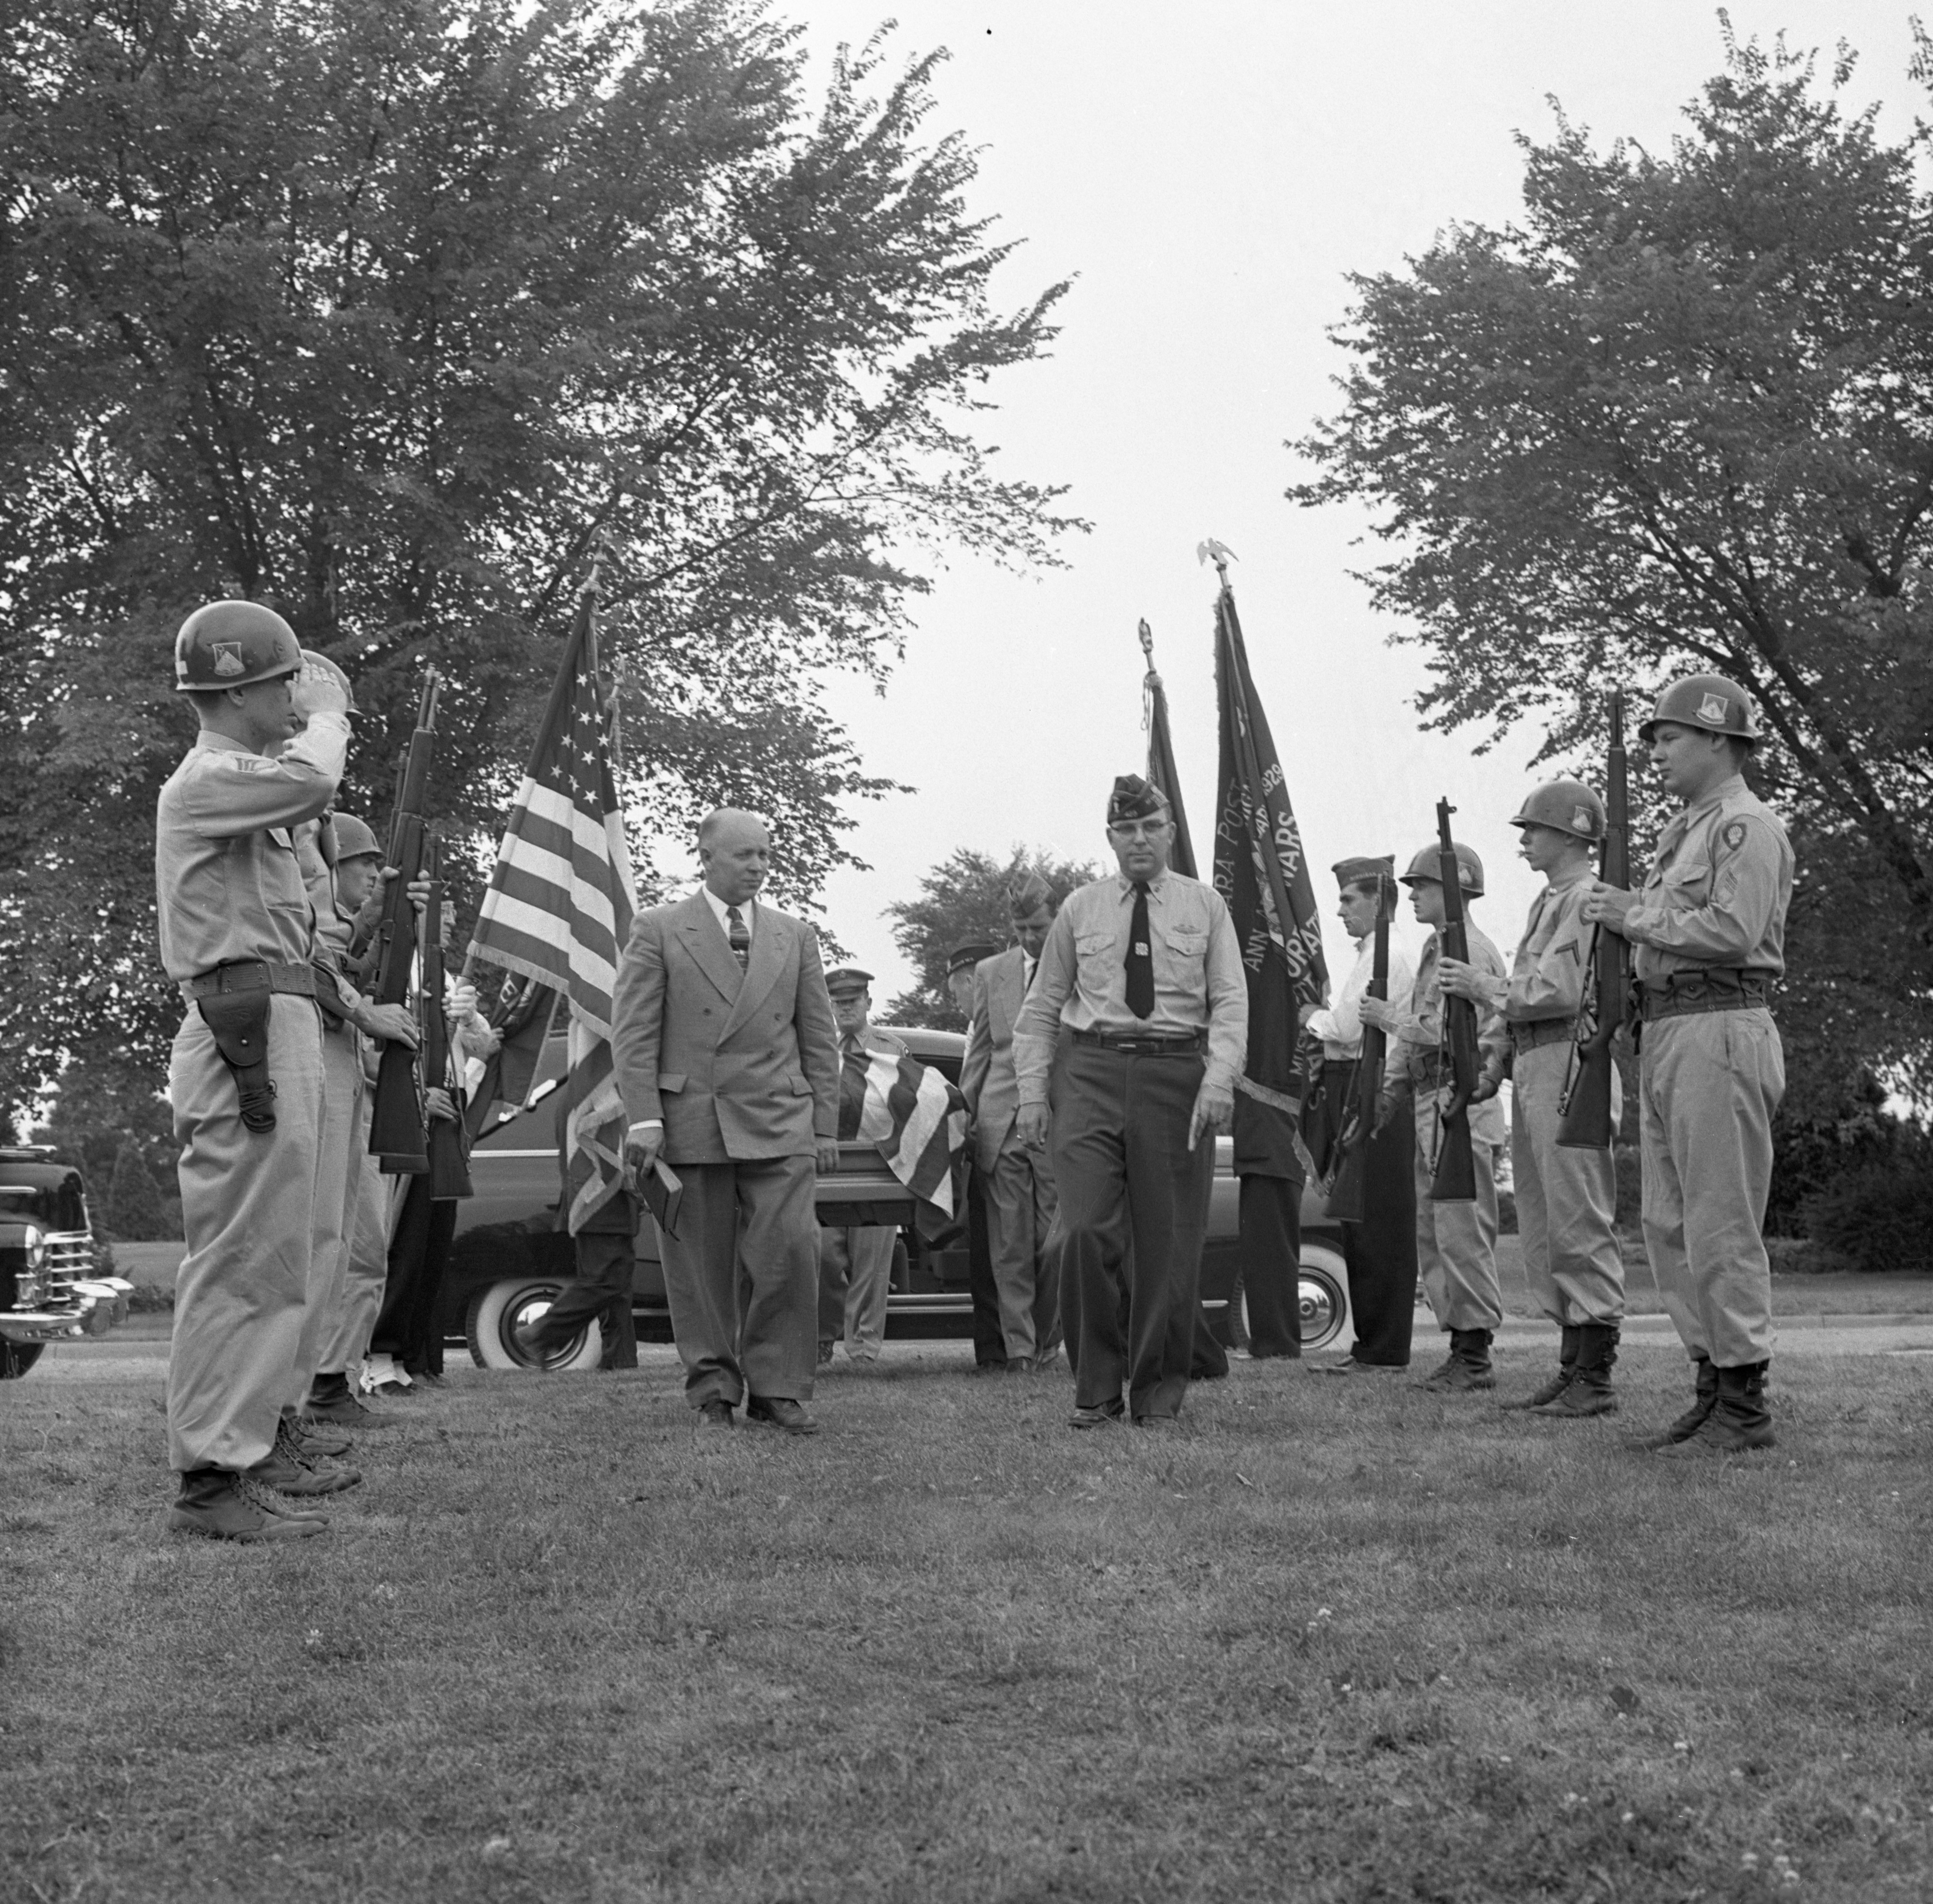 Military Burial Of Pfc. Robert Schroeder - Ann Arbor's First Korean War Casualty, July 1954 image